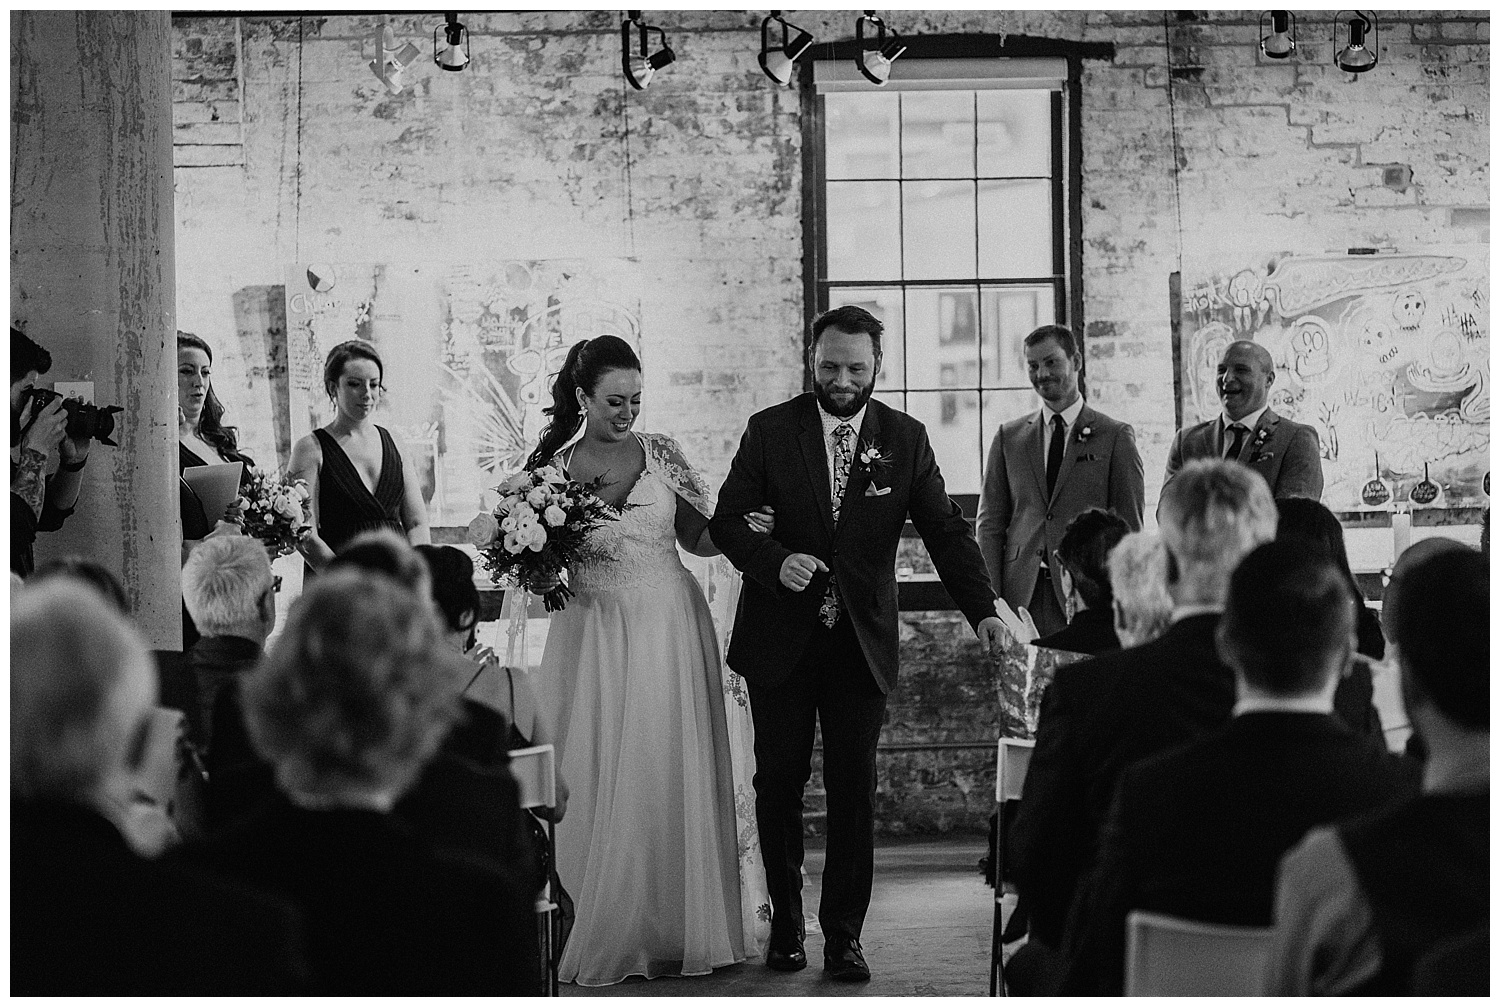 Katie Marie Photography | Archeo Wedding Arta Gallery Wedding | Distillery District Wedding | Toronto Wedding Photographer | Hamilton Toronto Ontario Wedding Photographer |_0110.jpg